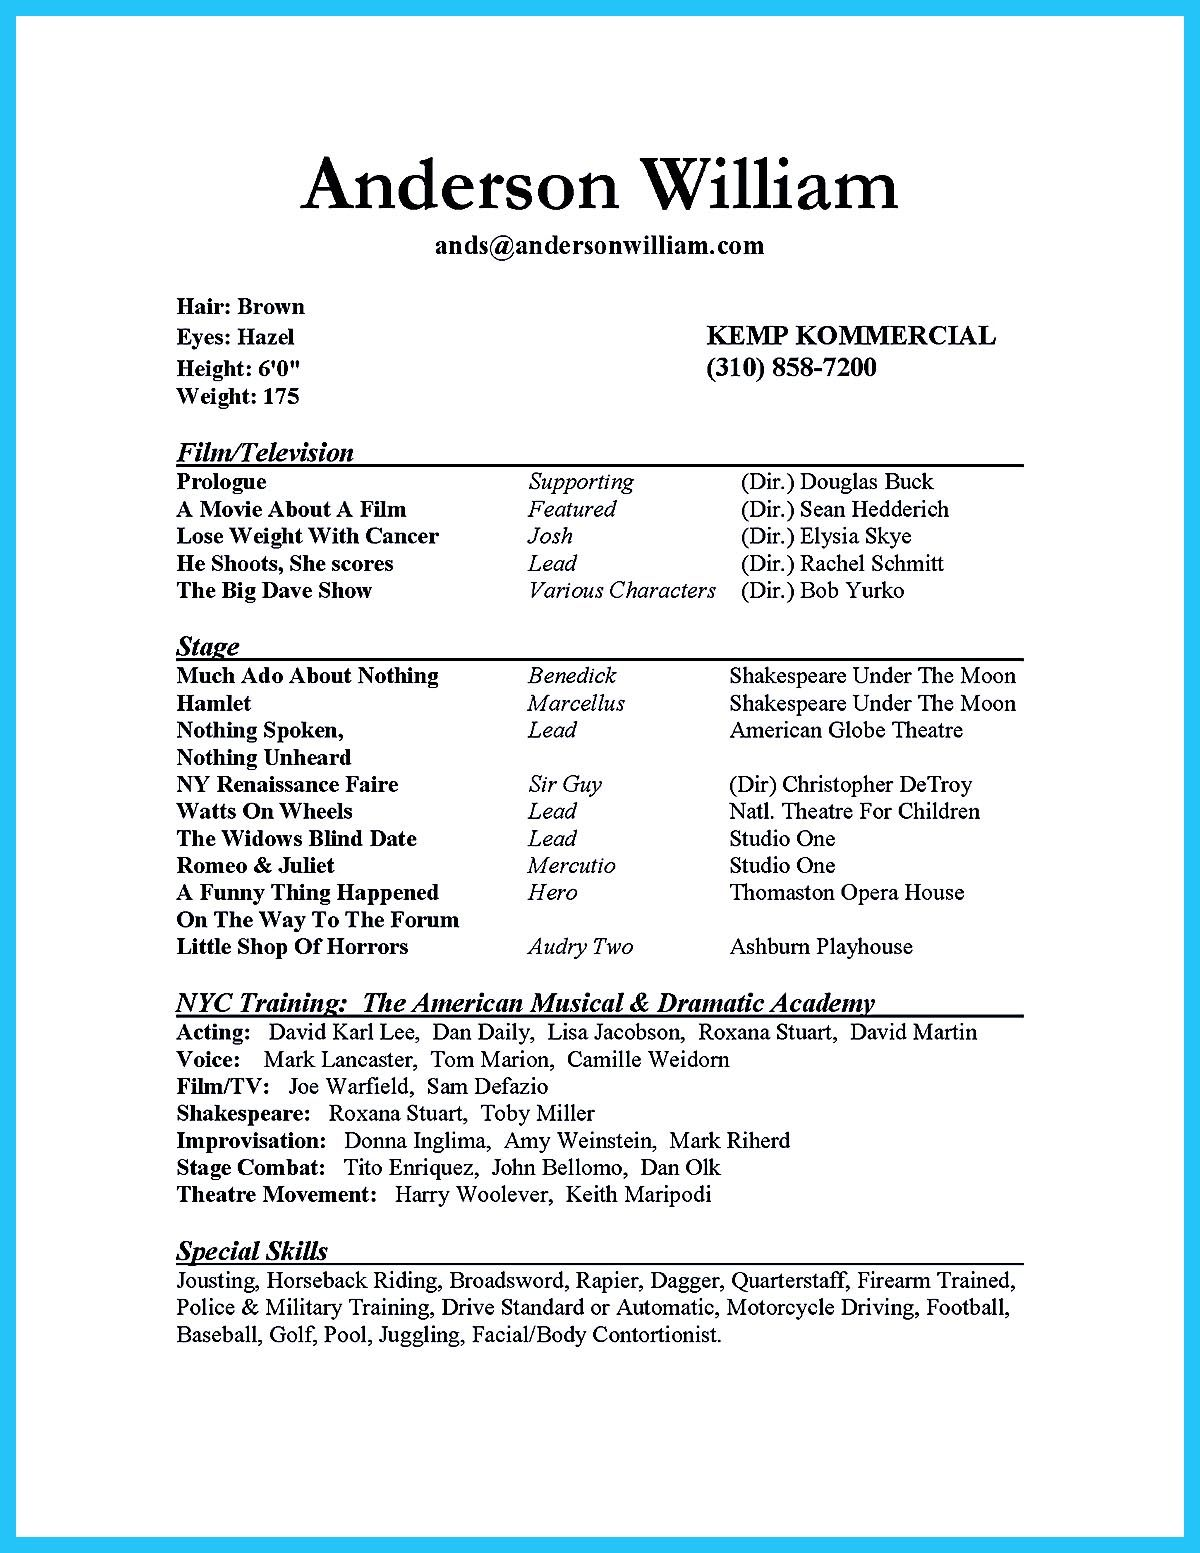 Actor Resume Format New Actor Resume Sample Presents How You Will Make Your Professional Or .